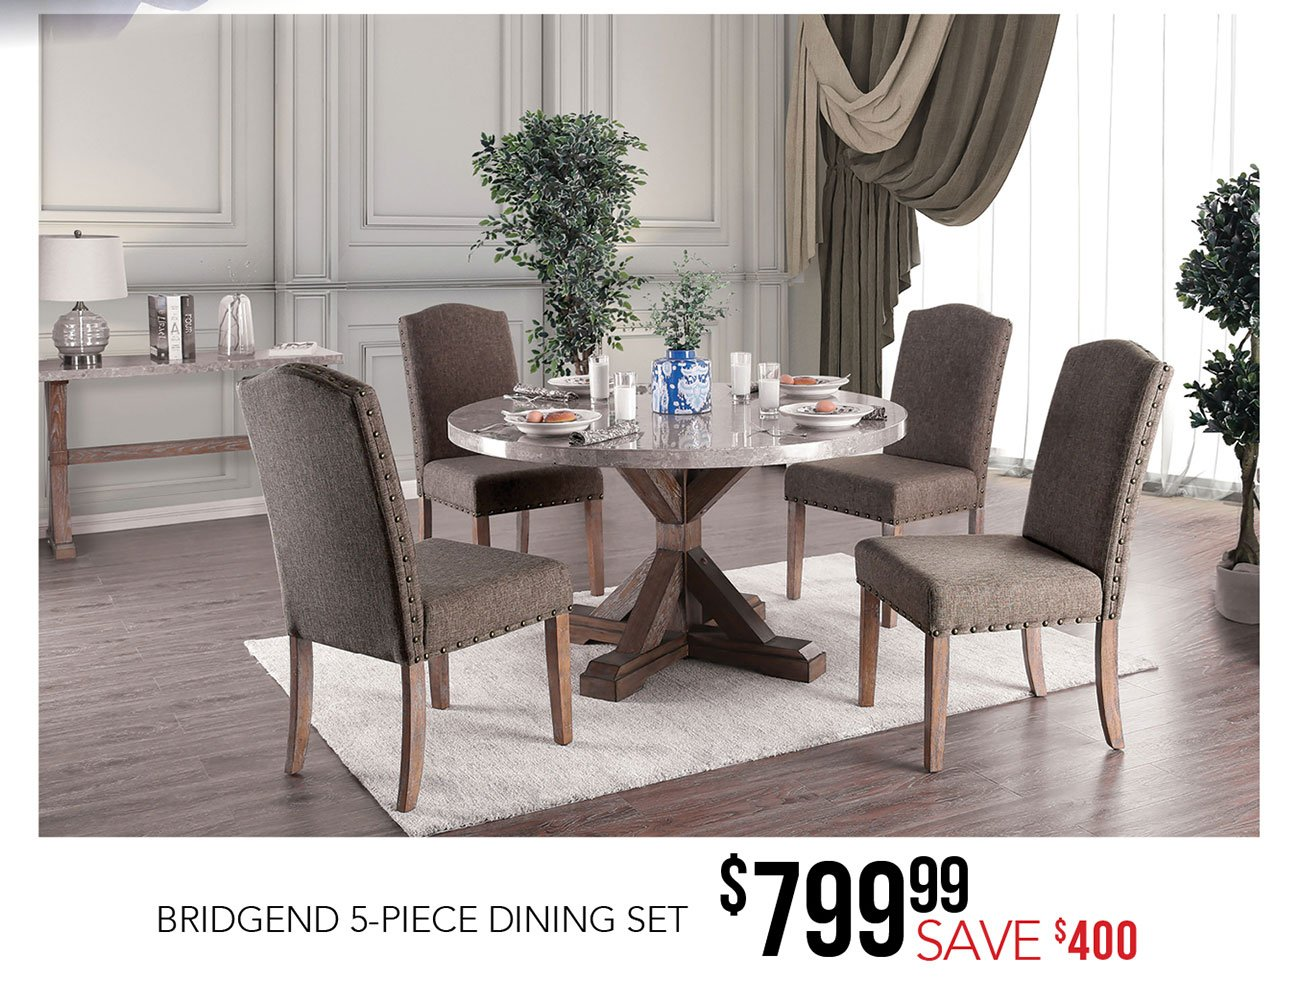 Bridgend-dining-set